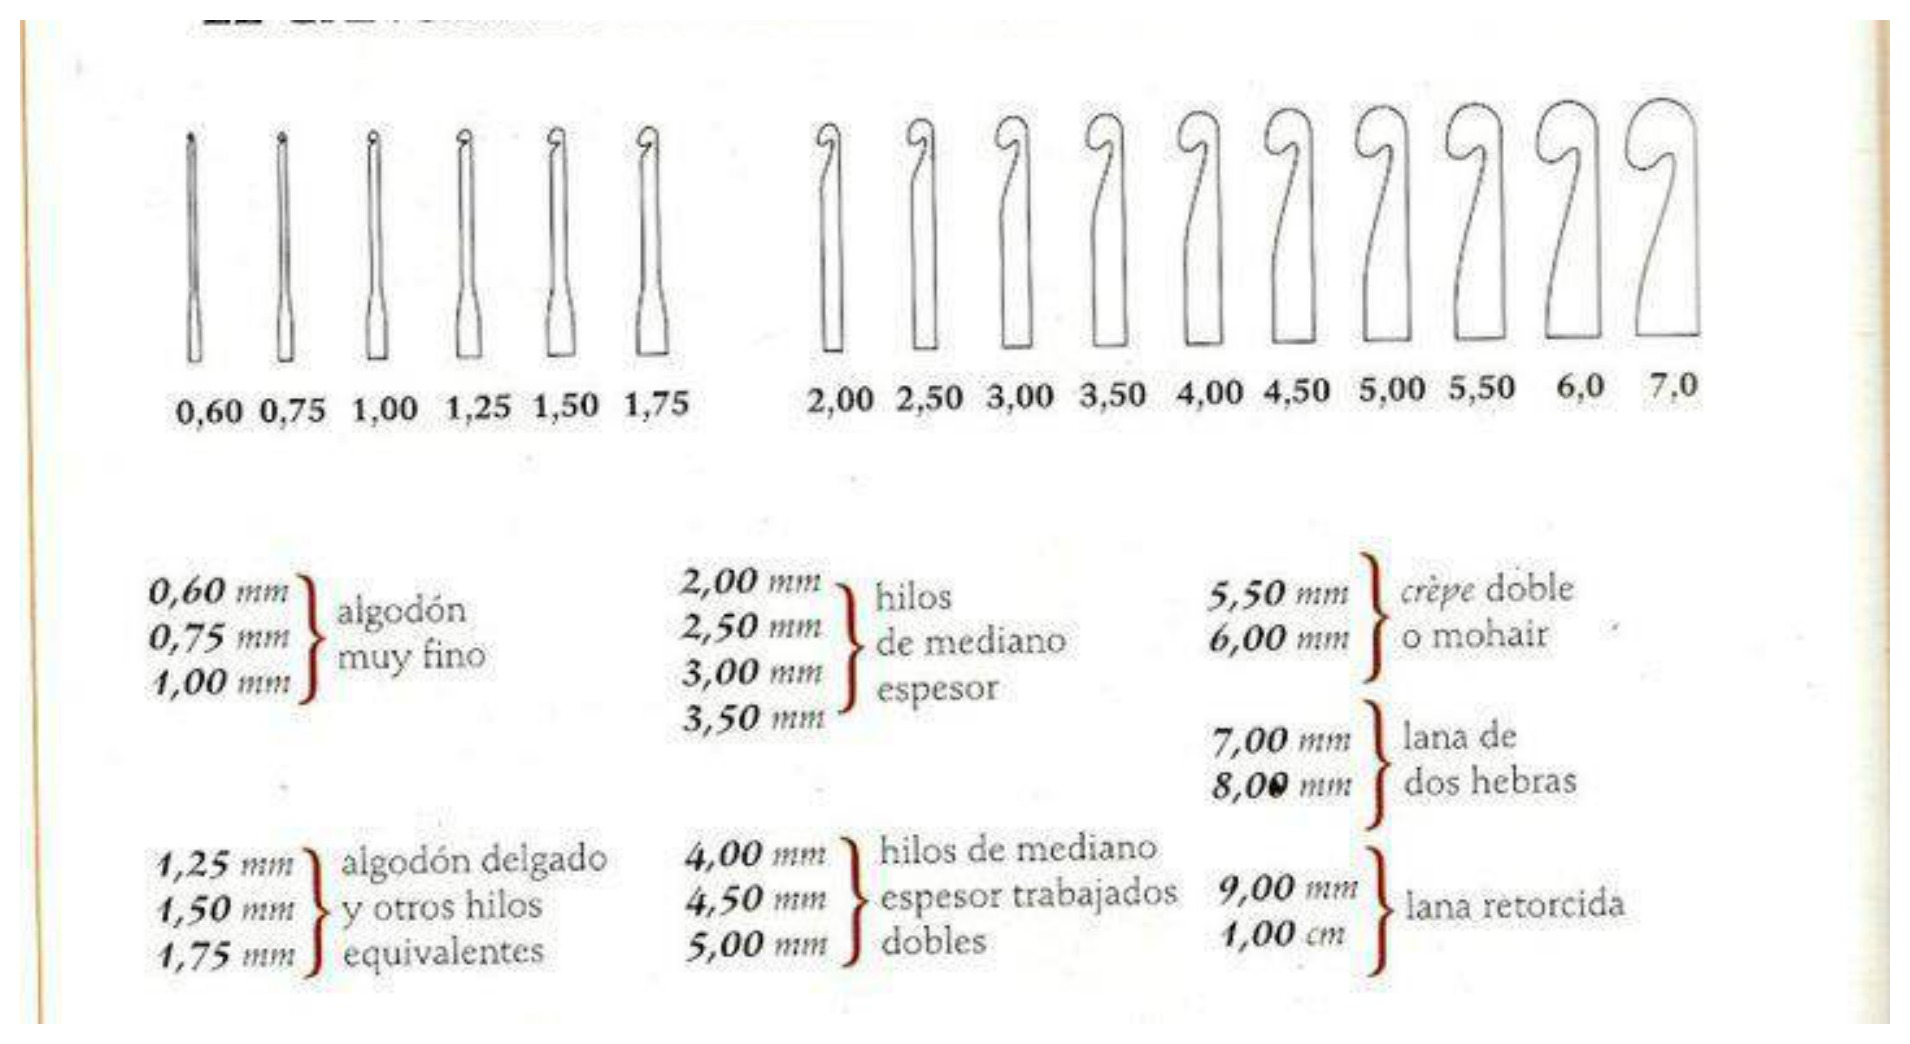 Tables of measures and sizes